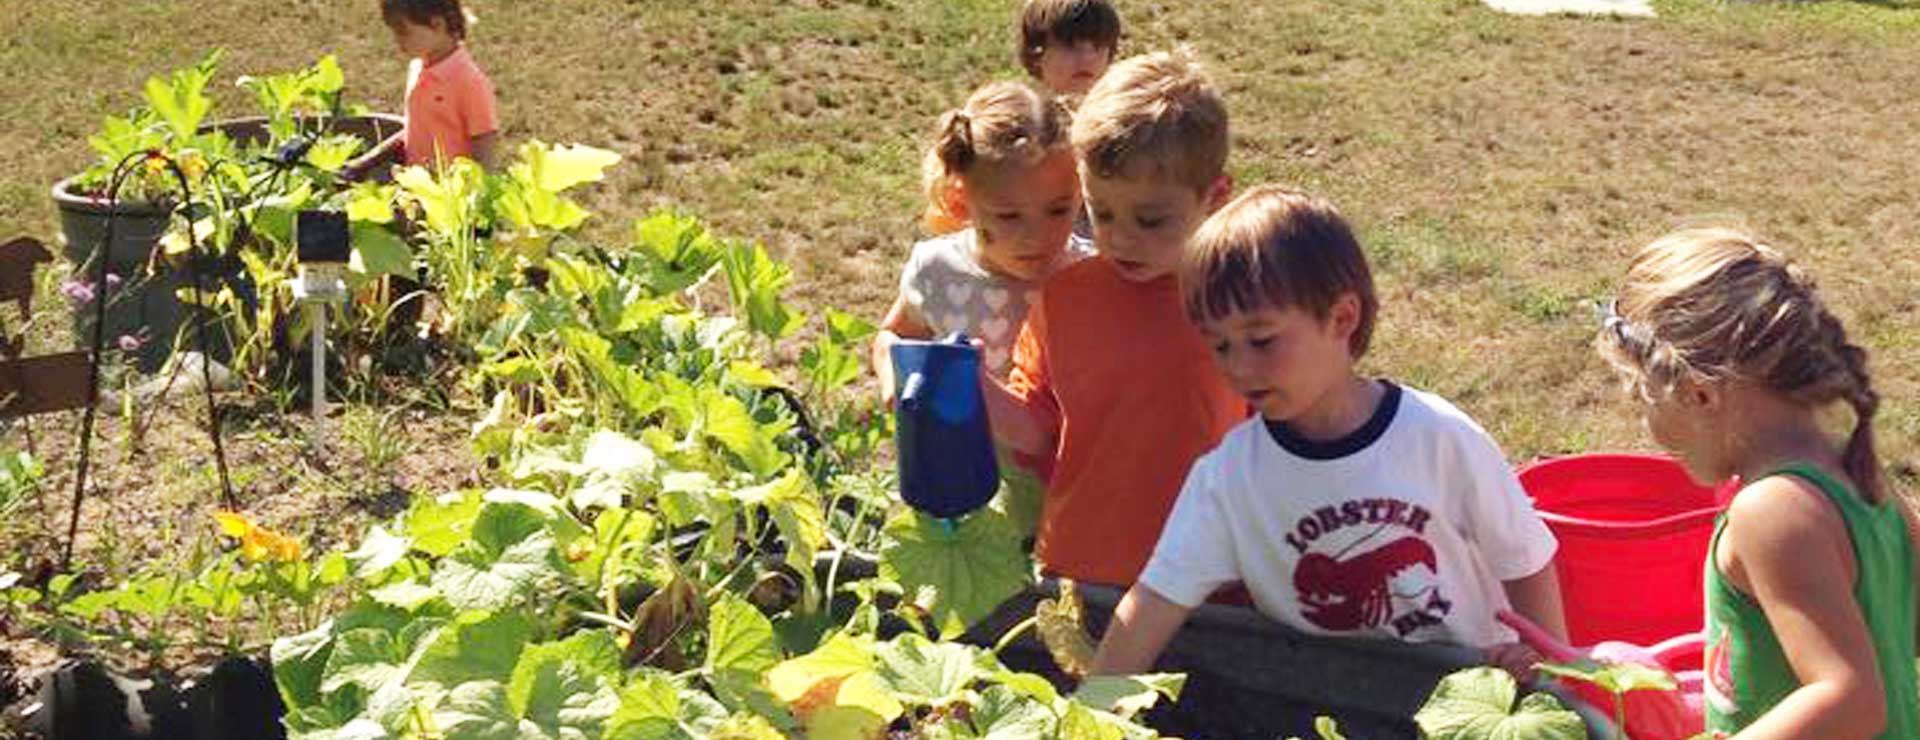 canterbury-creek-farm-preschool-grand-rapids-mi-children-learning-gardening